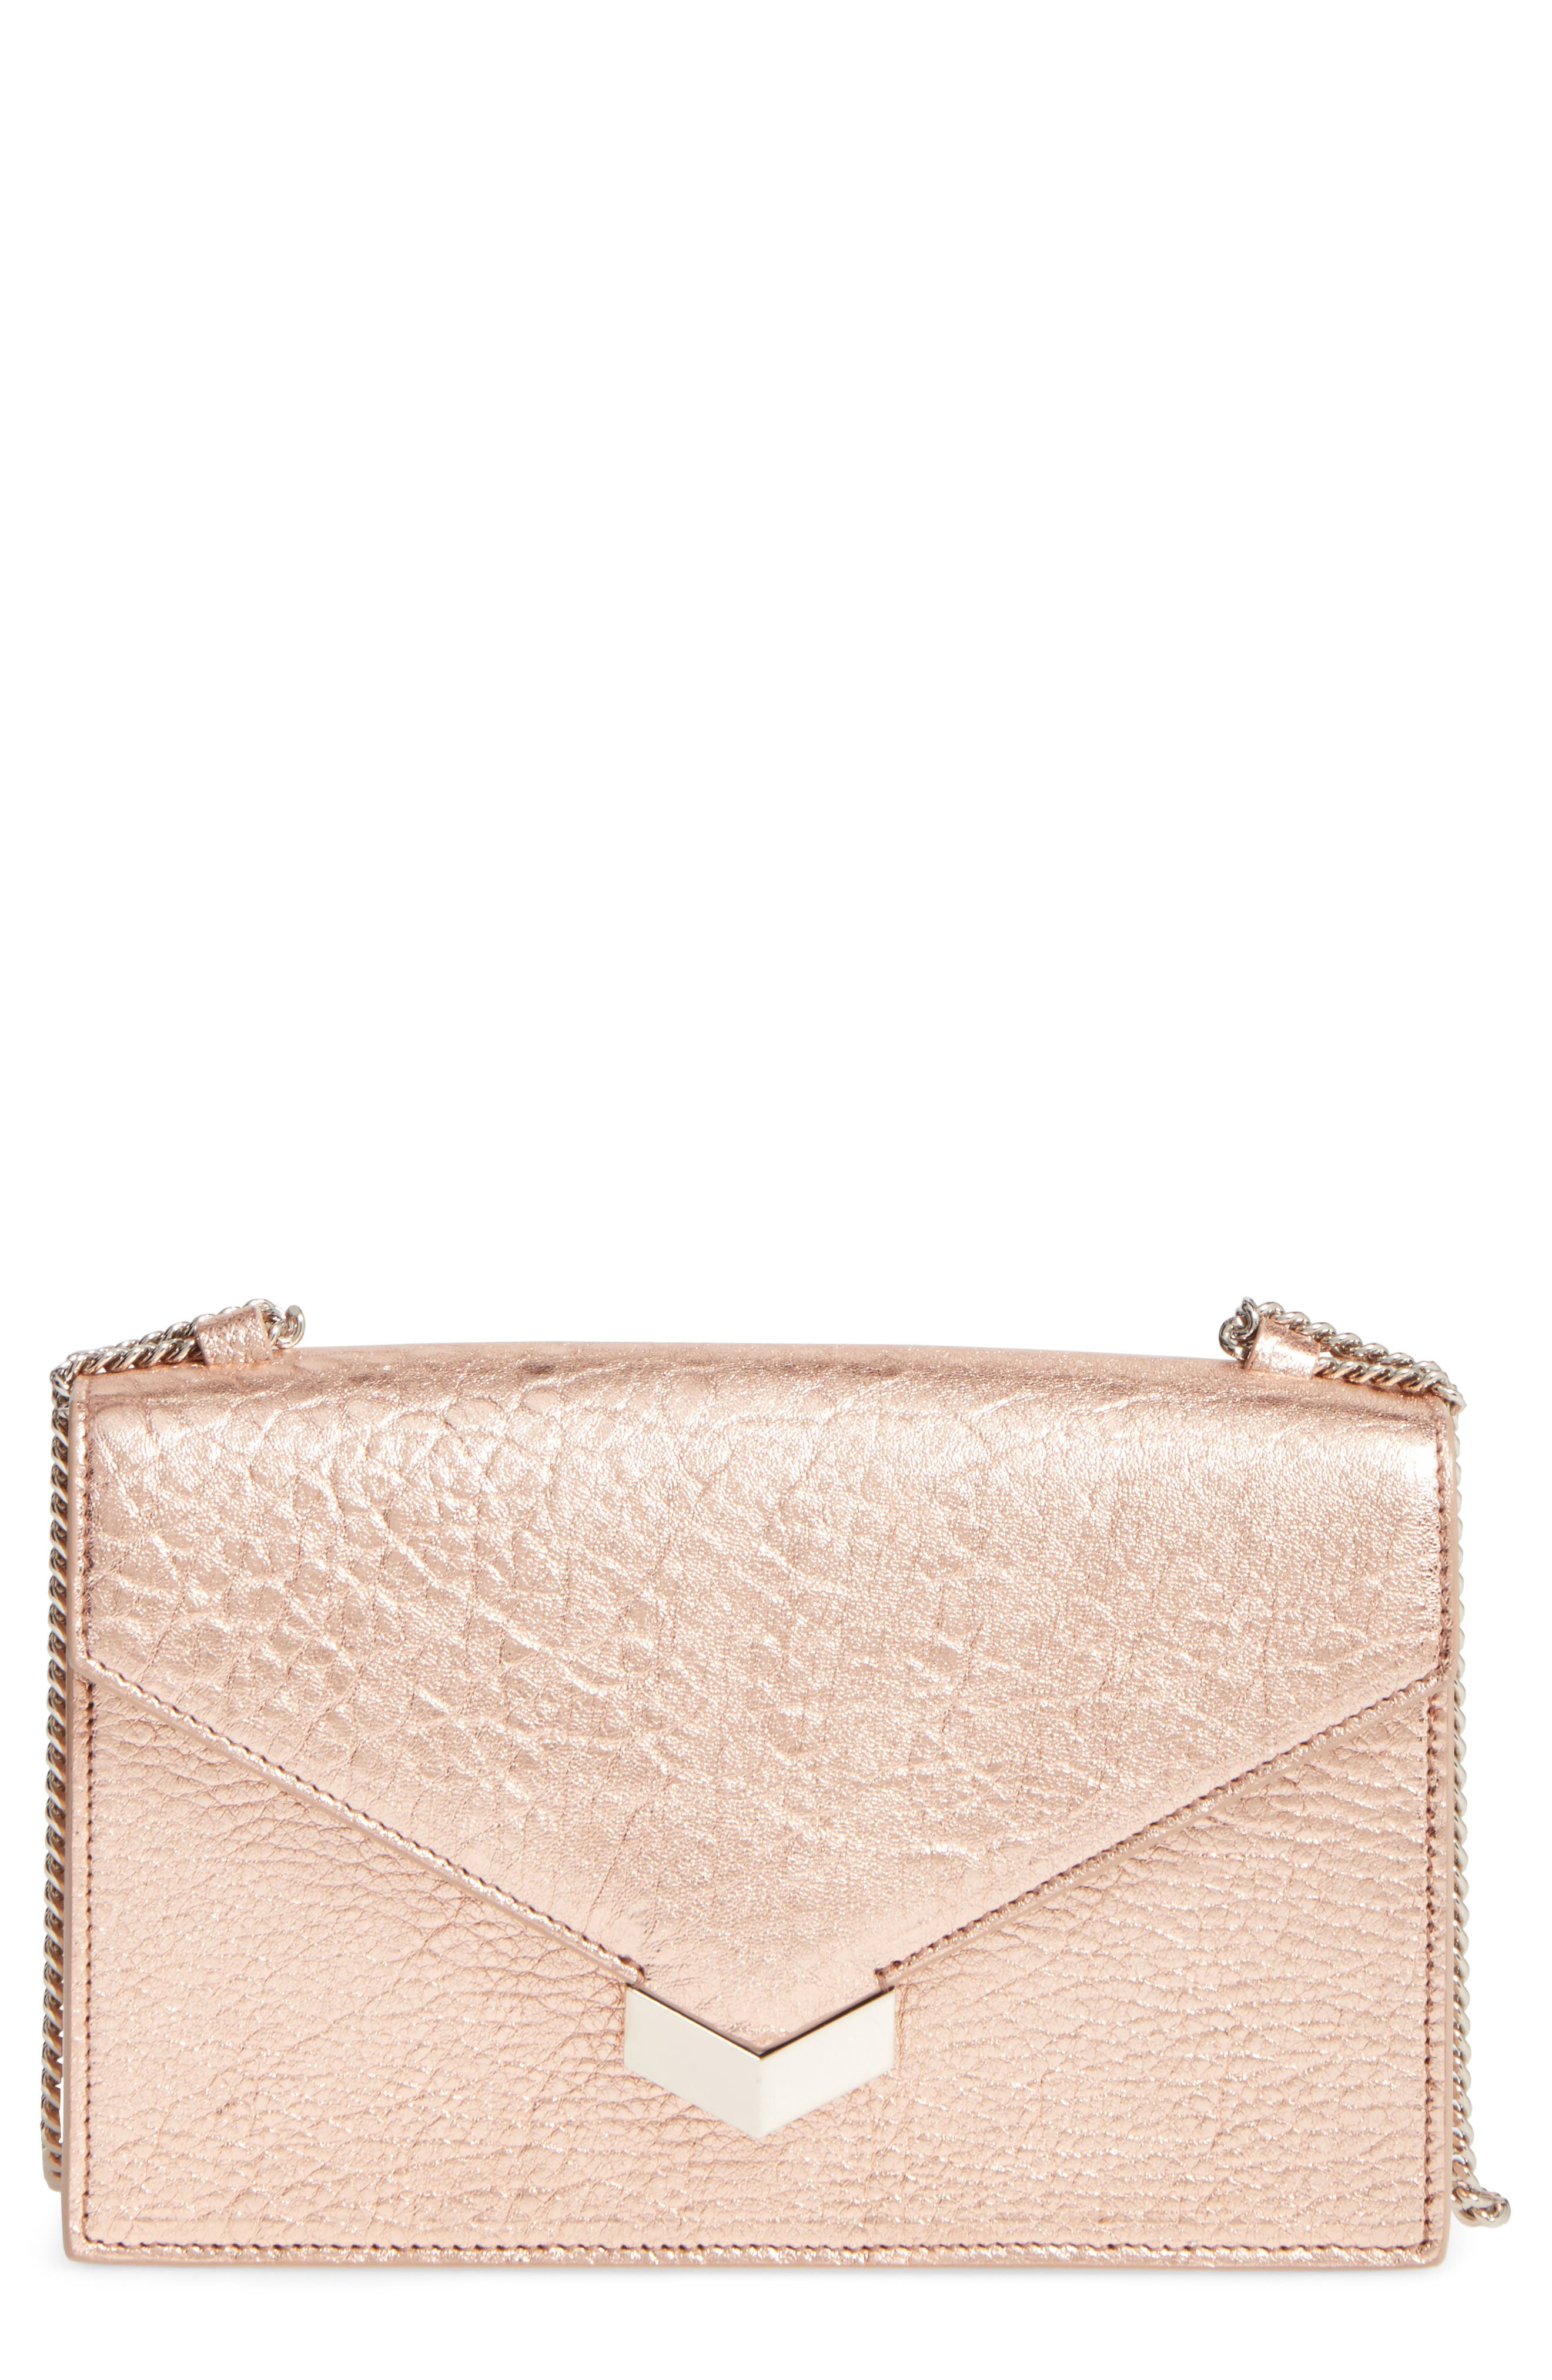 Main Image - Jimmy Choo Leila Grainy Lambskin Leather Crossbody Bag